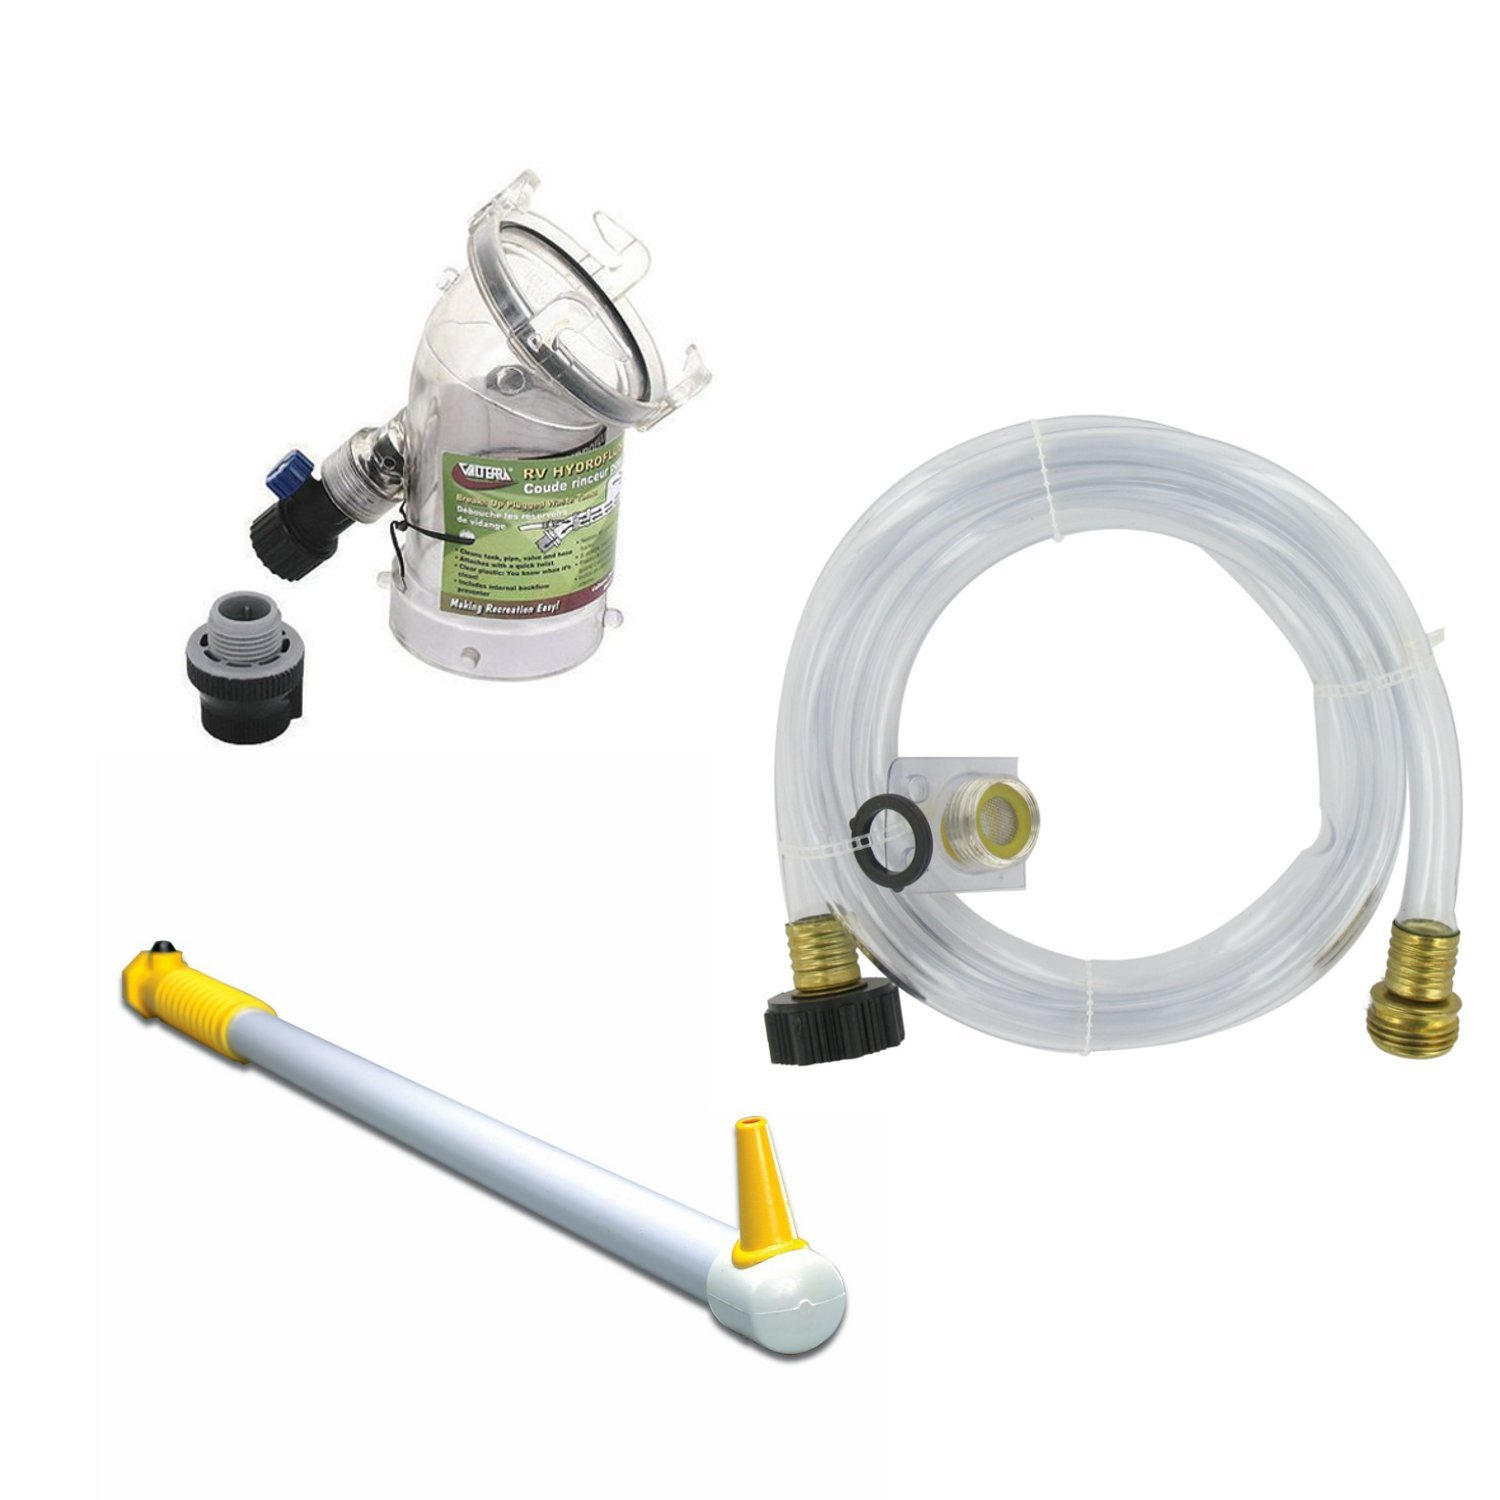 Rv Black Tank Flush Valve With Master Blaster Tank Wand And Hose Kit Bundle To Keep Your Blank Tank And Sensors Ultra Clean Buy Online In Oman Valterra Products In